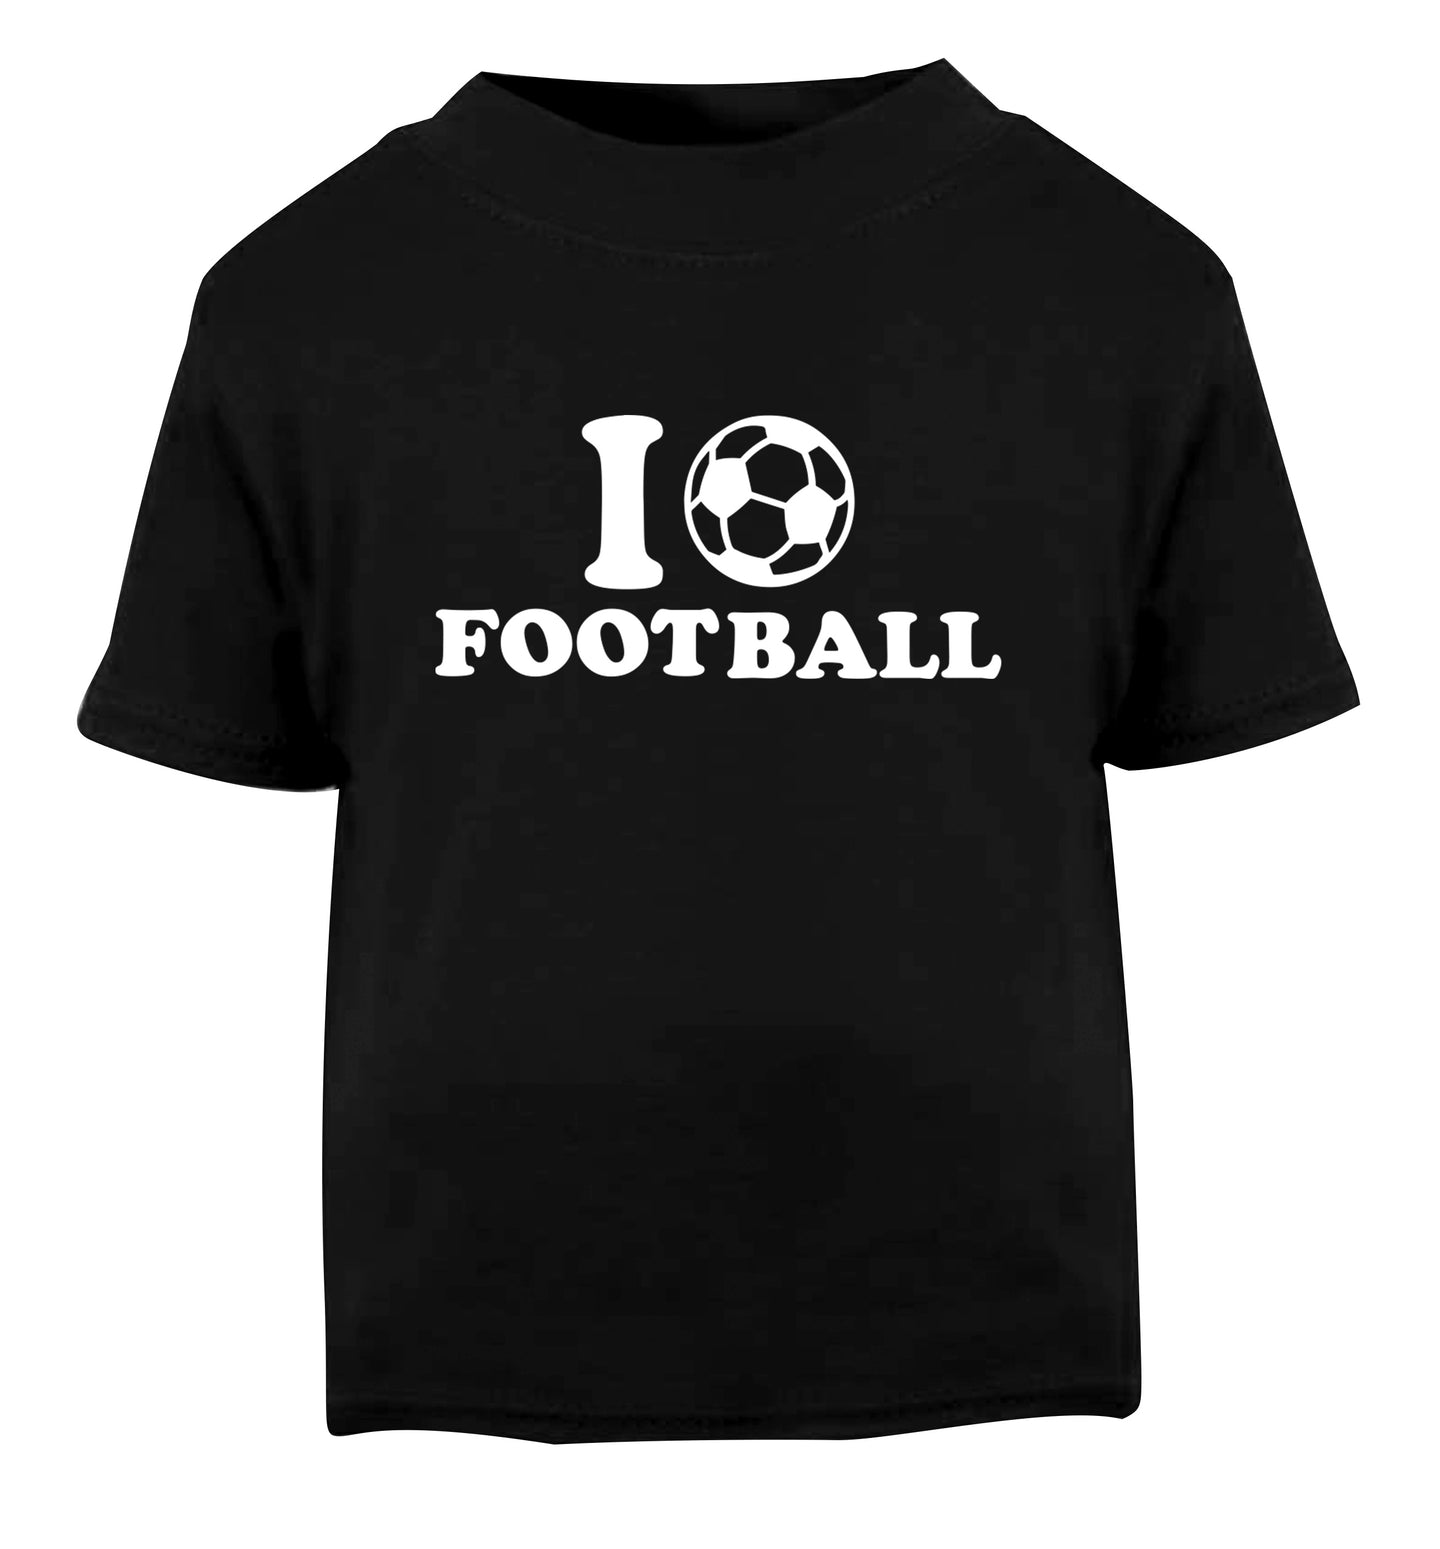 I love football Black Baby Toddler Tshirt 2 years